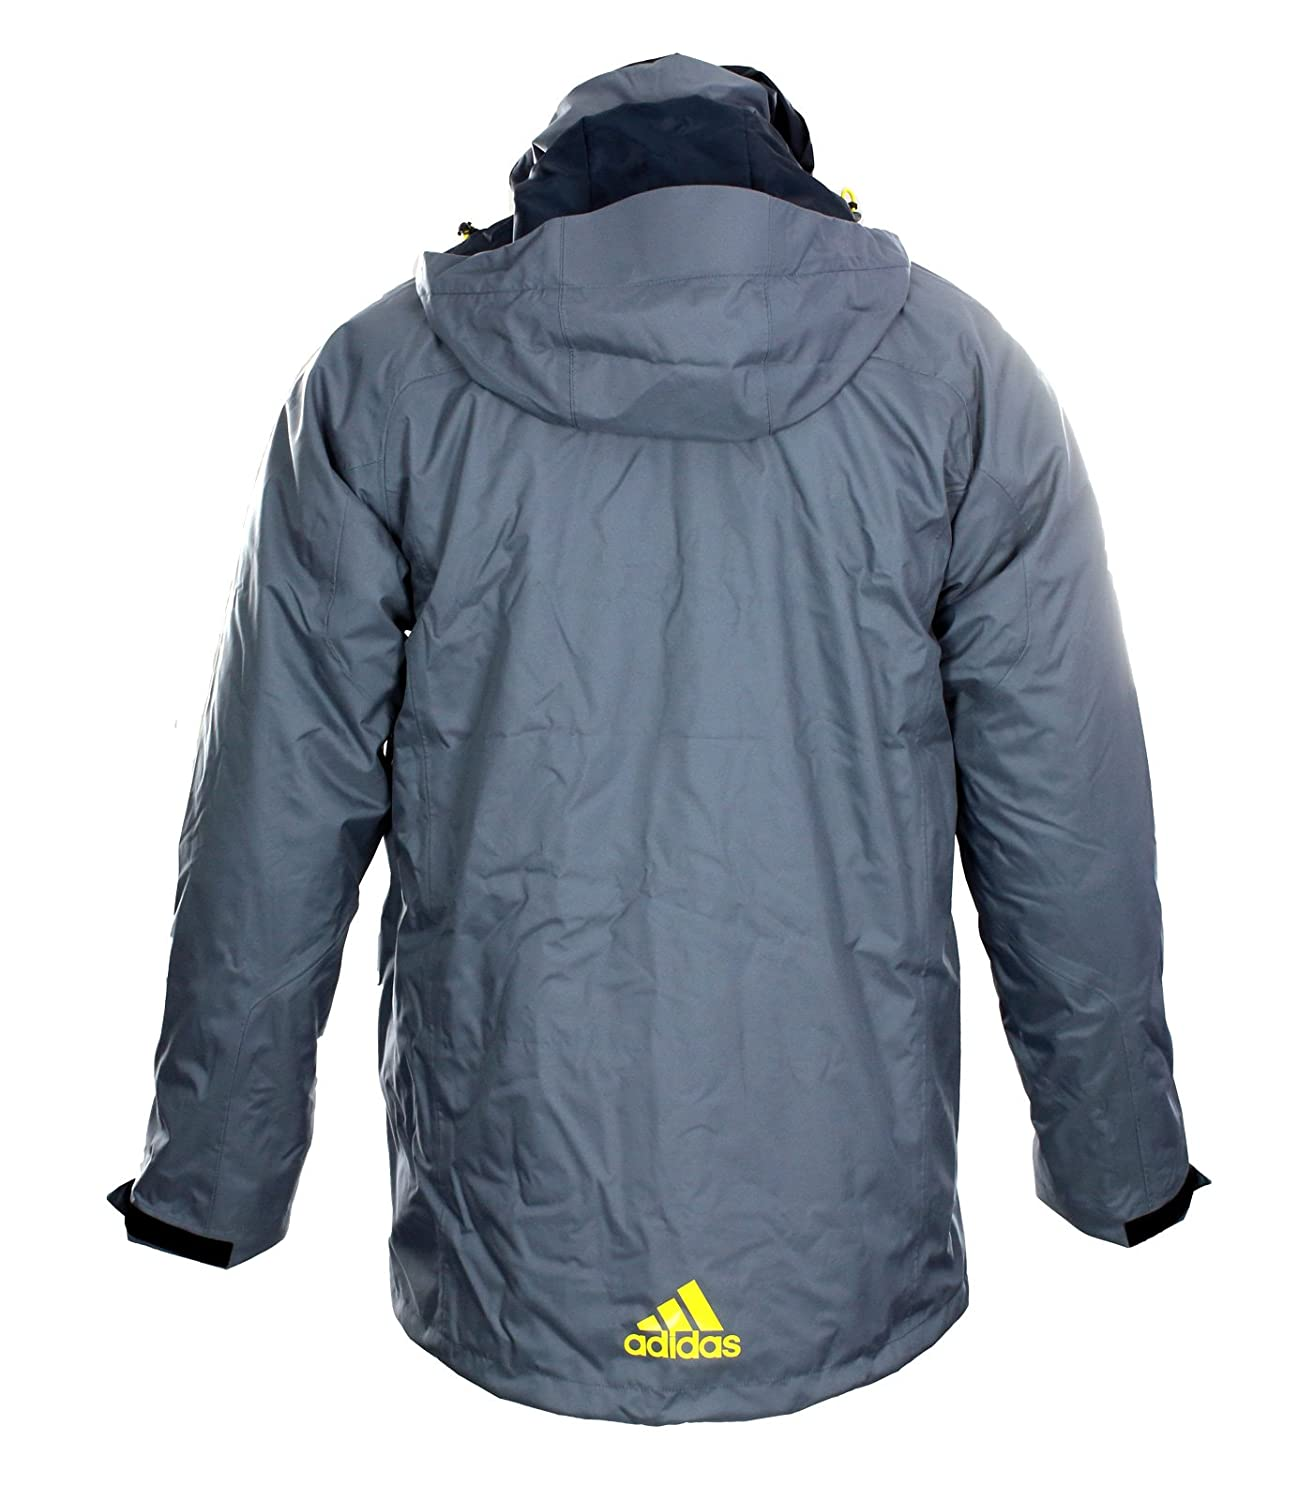 adidas Event M 3 in1 Climaproof Storm Outdoor Jacke